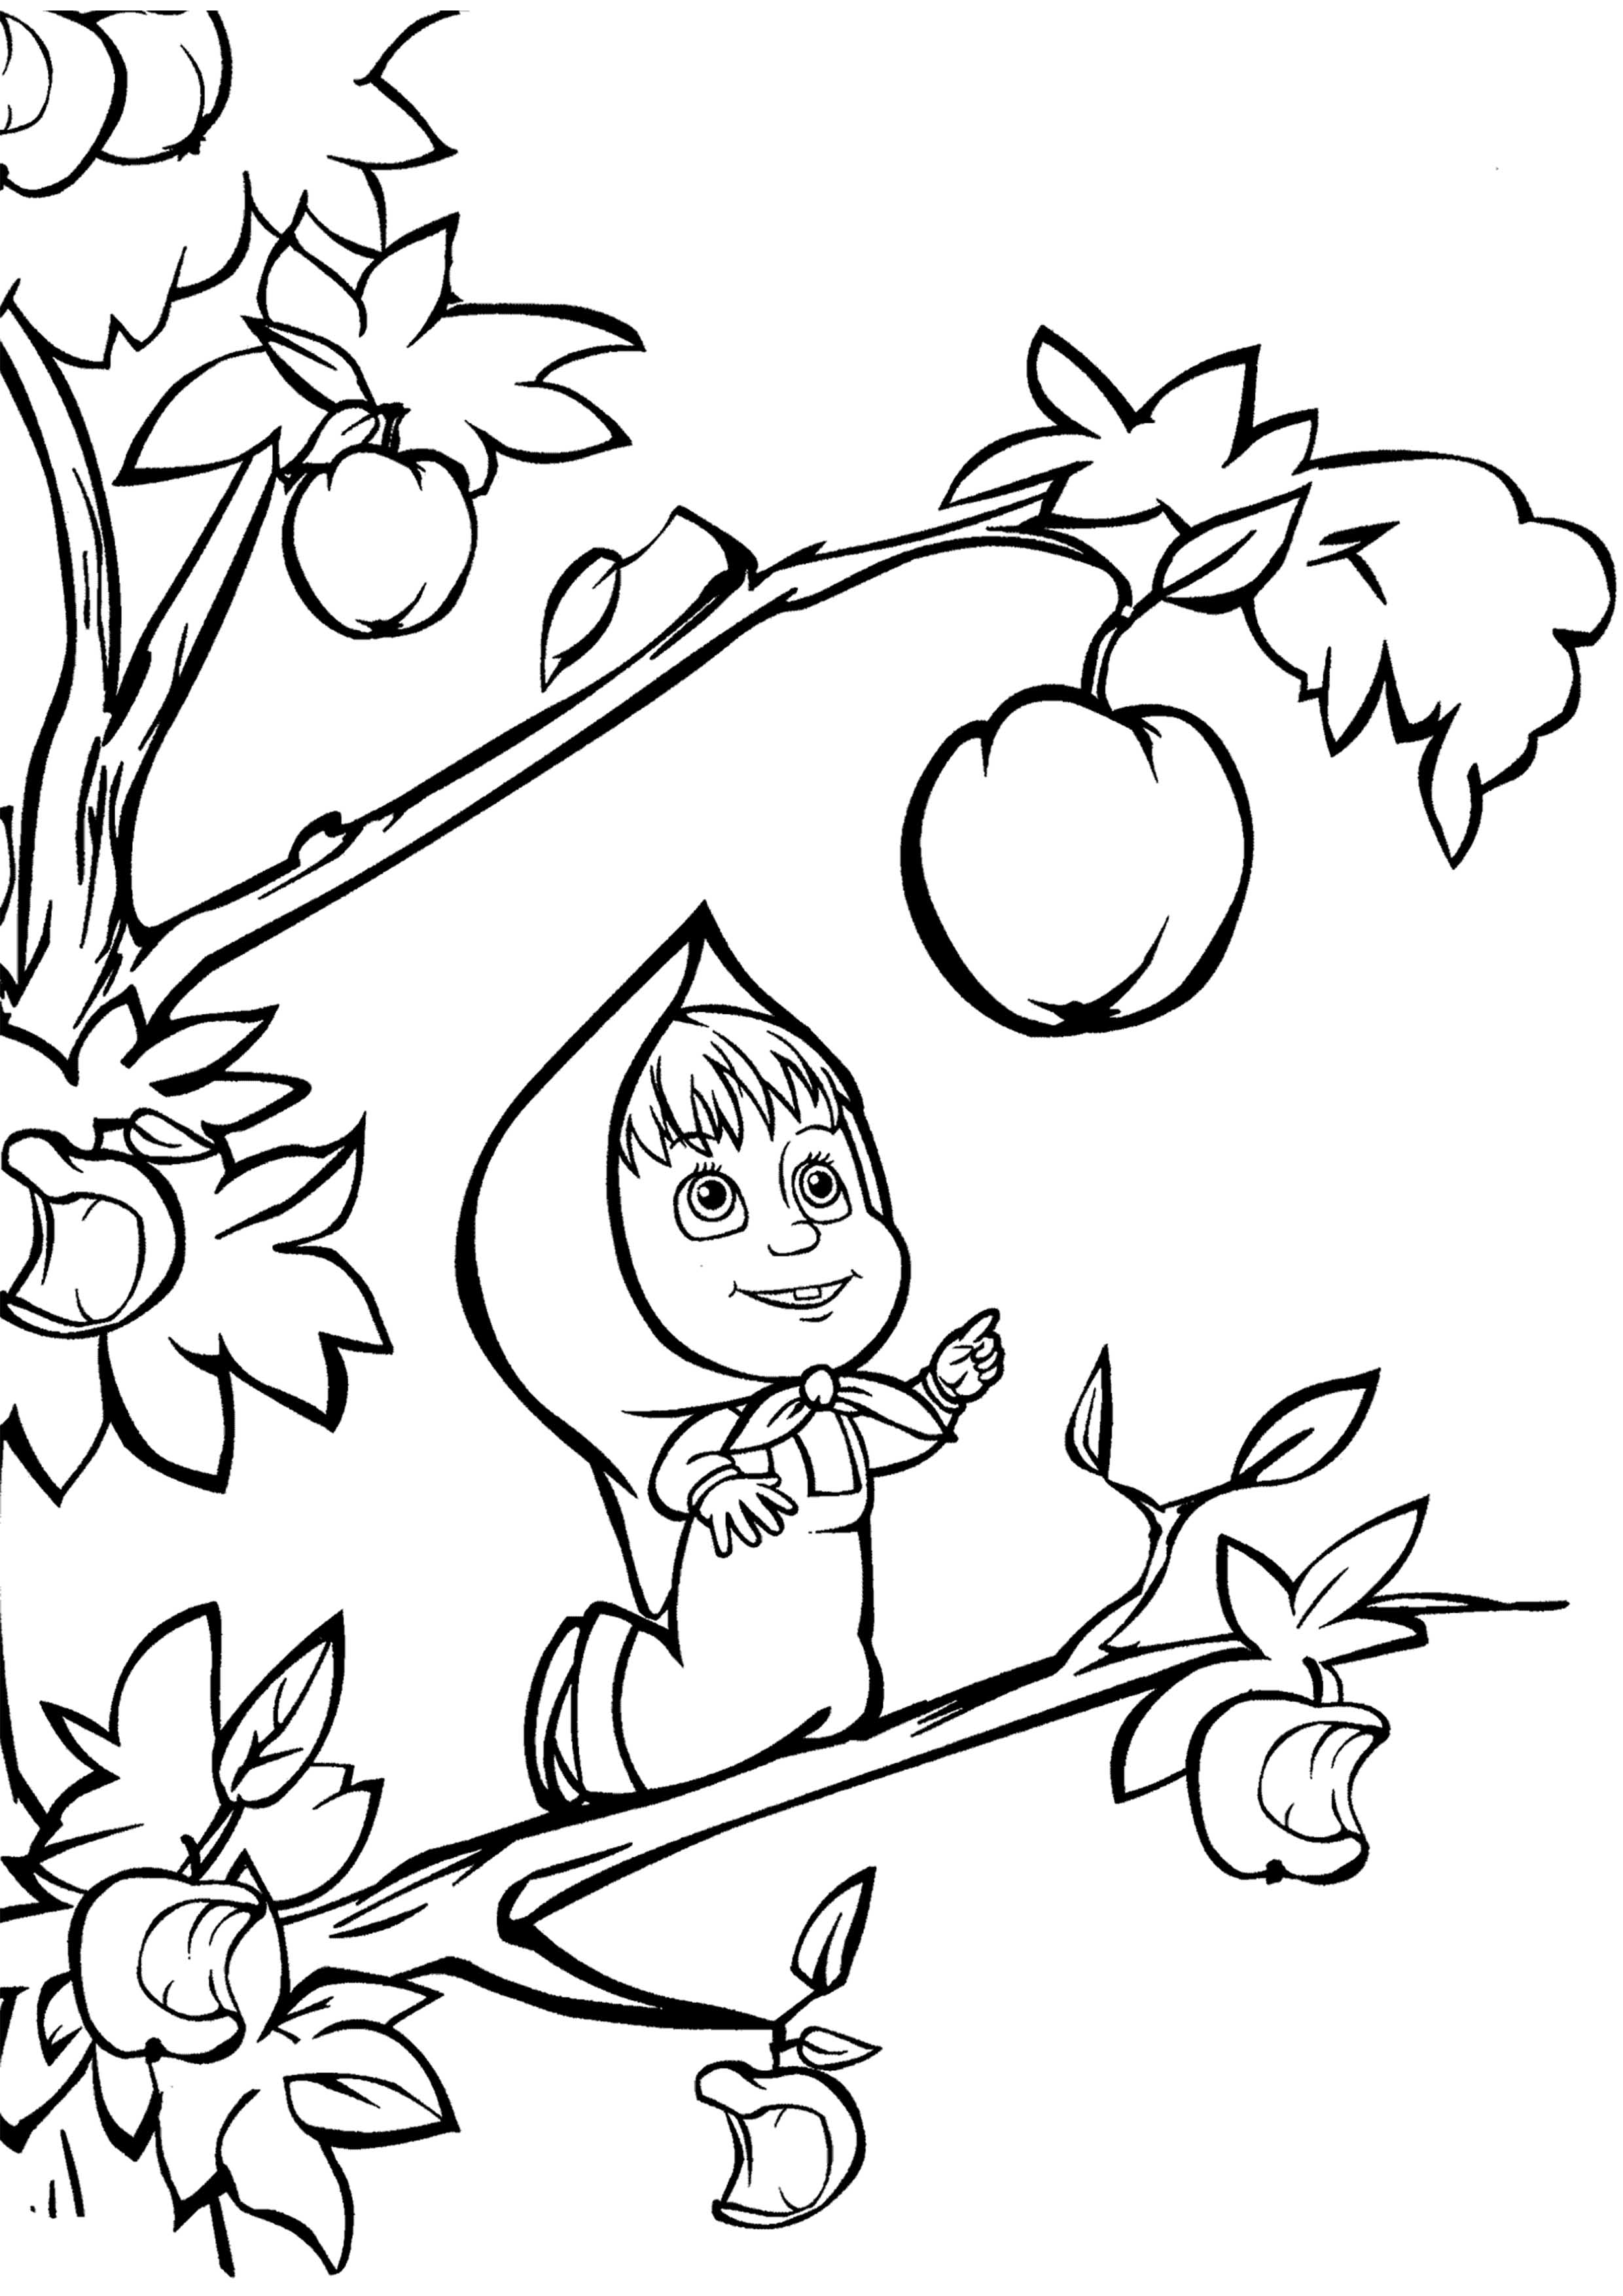 Coloring book kea - Kea Coloring Book Pages Collections